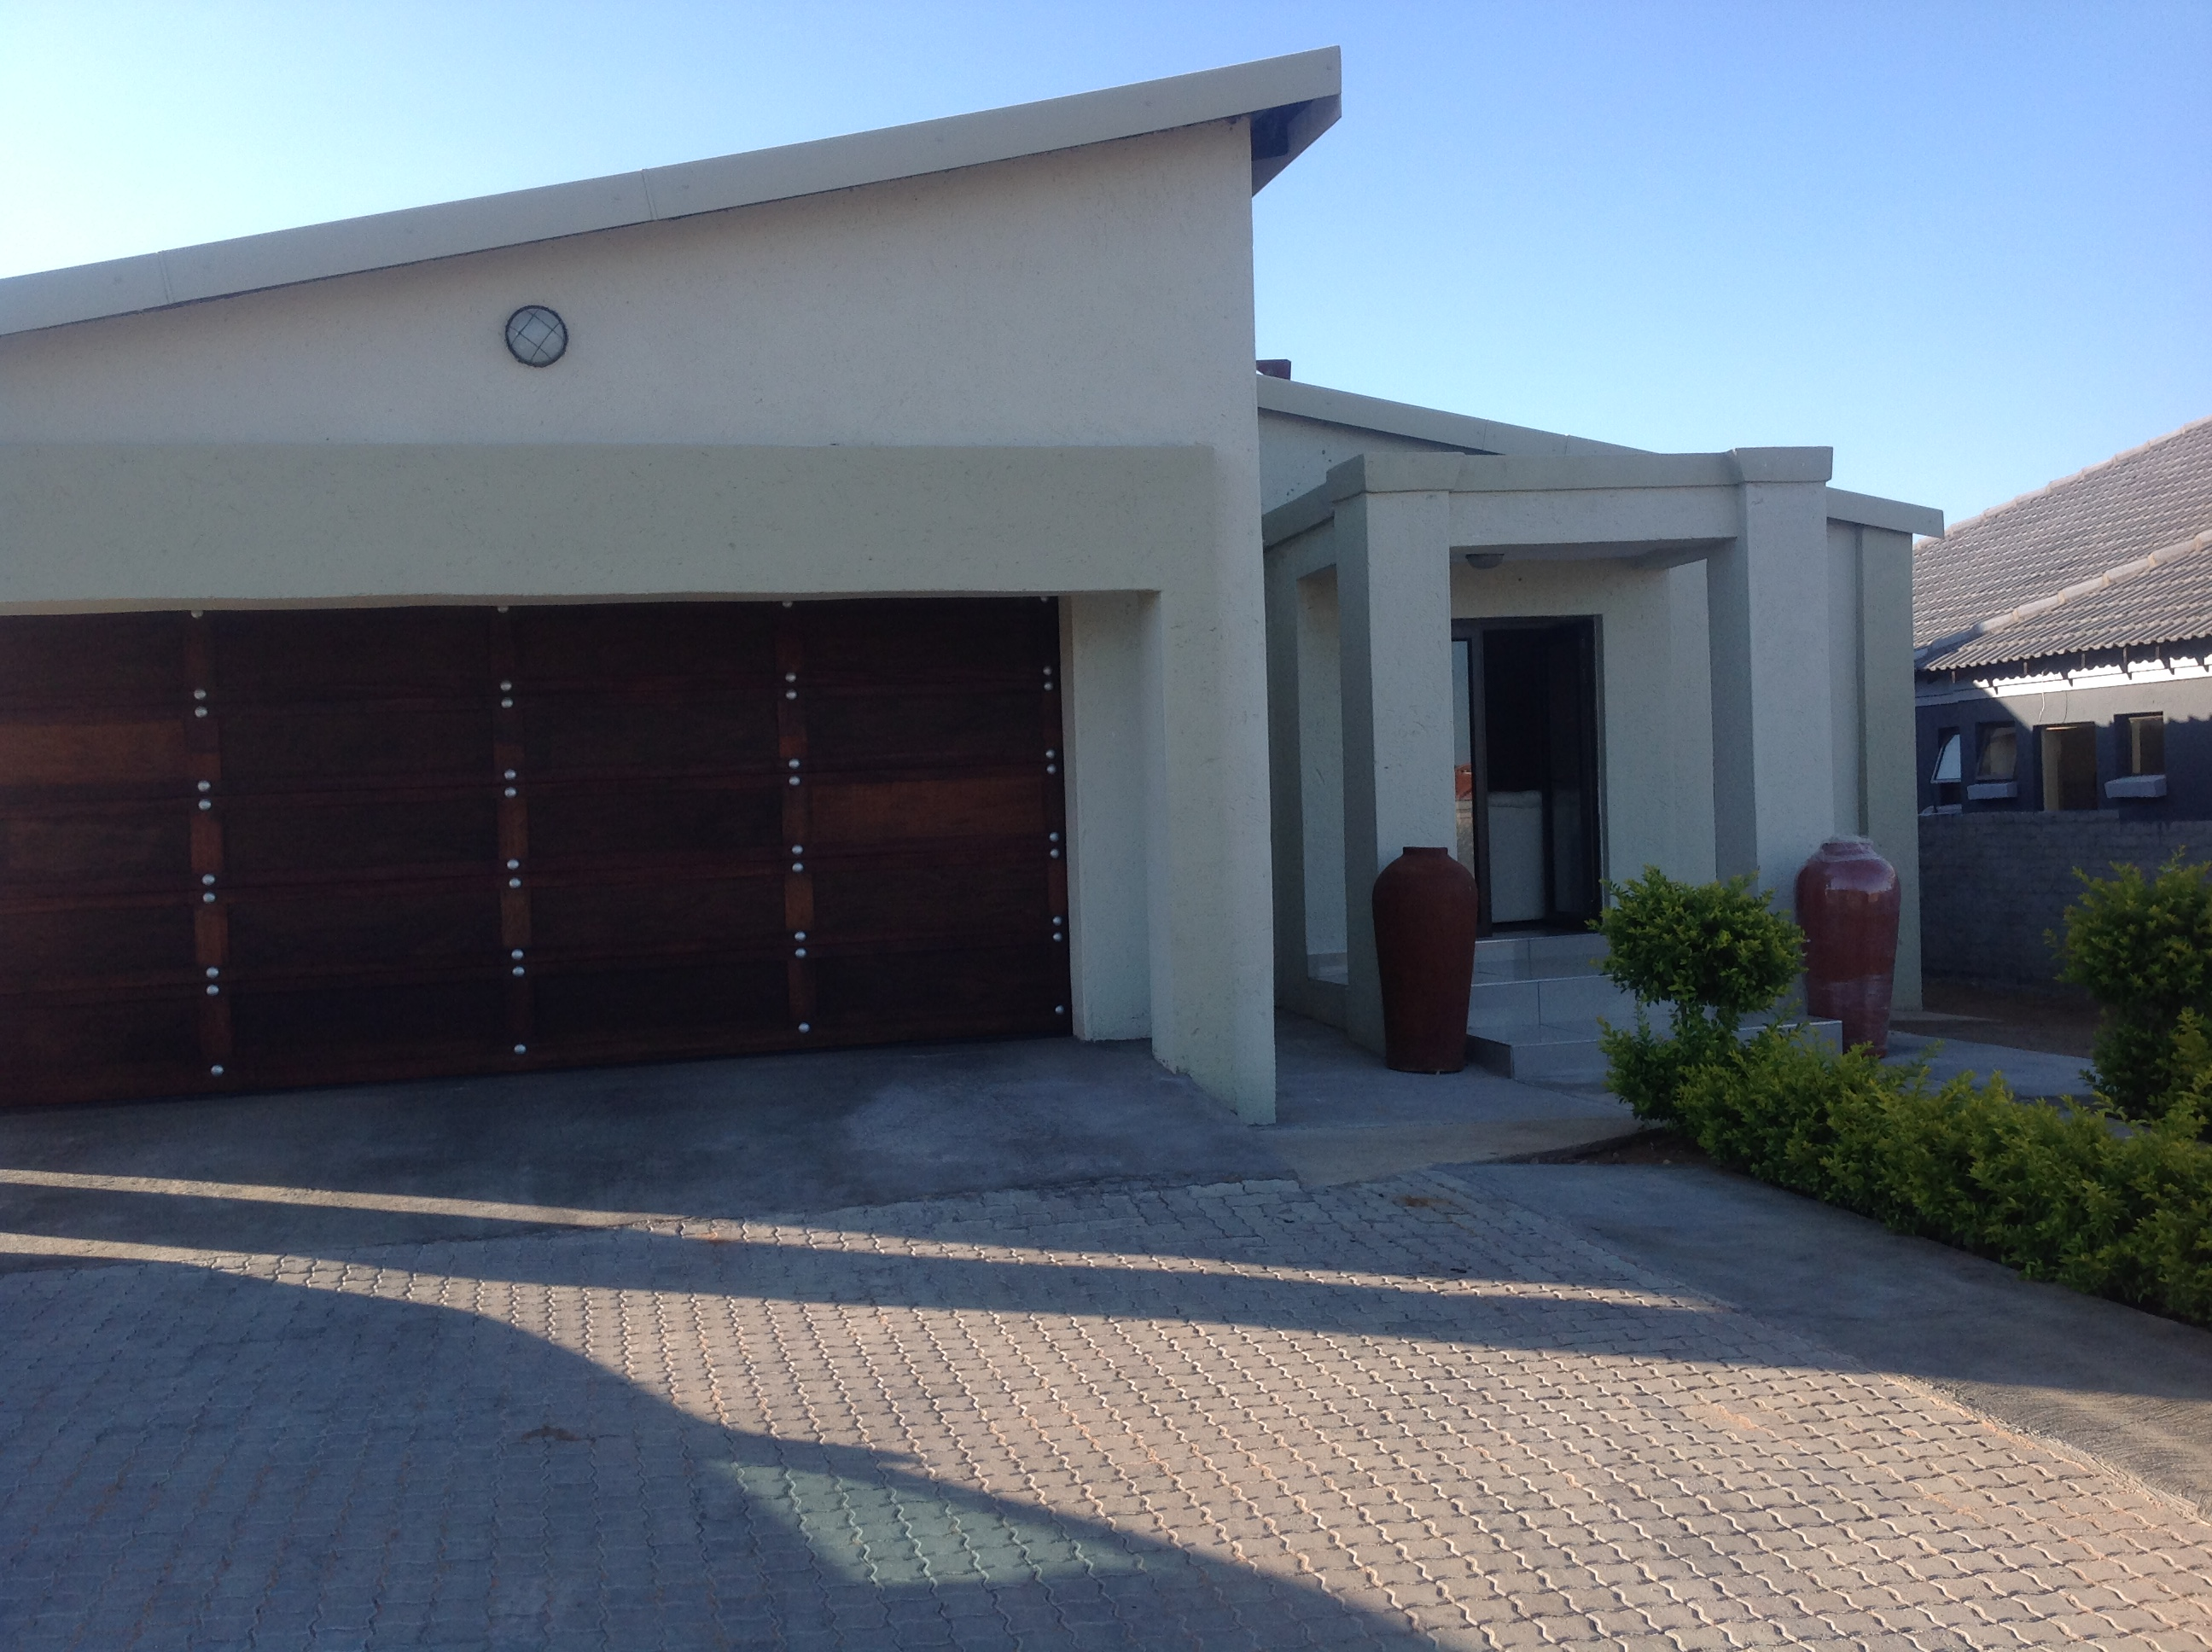 3 Bedroom house in a security estate